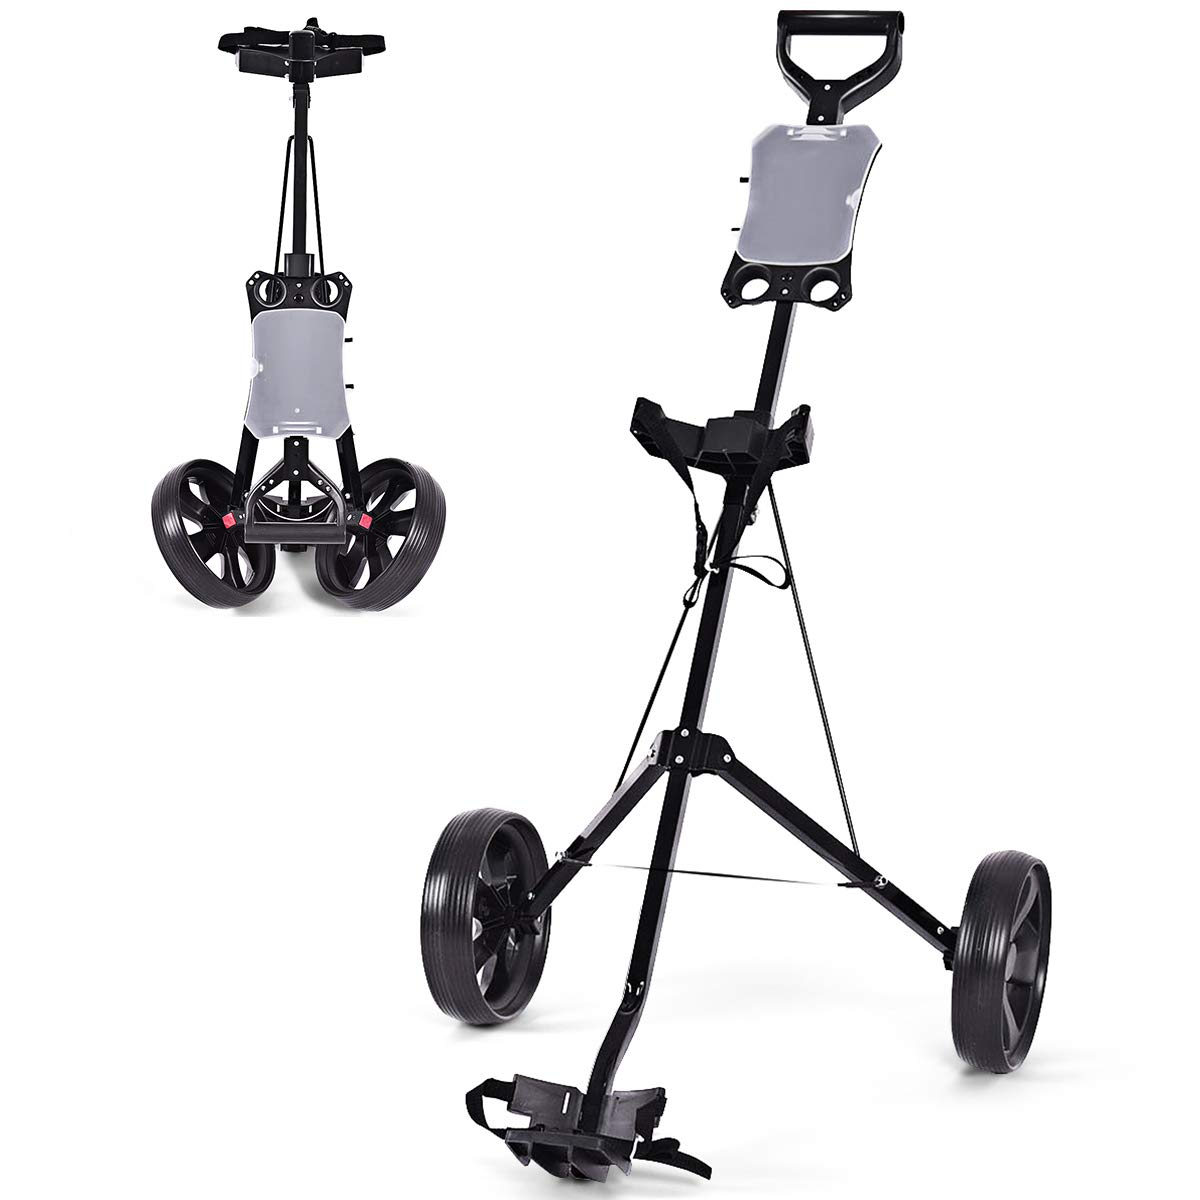 COSTWAY Golf Cart Foldable 2 Wheel Push Pull Cart Trolley by COSTWAY (Image #3)